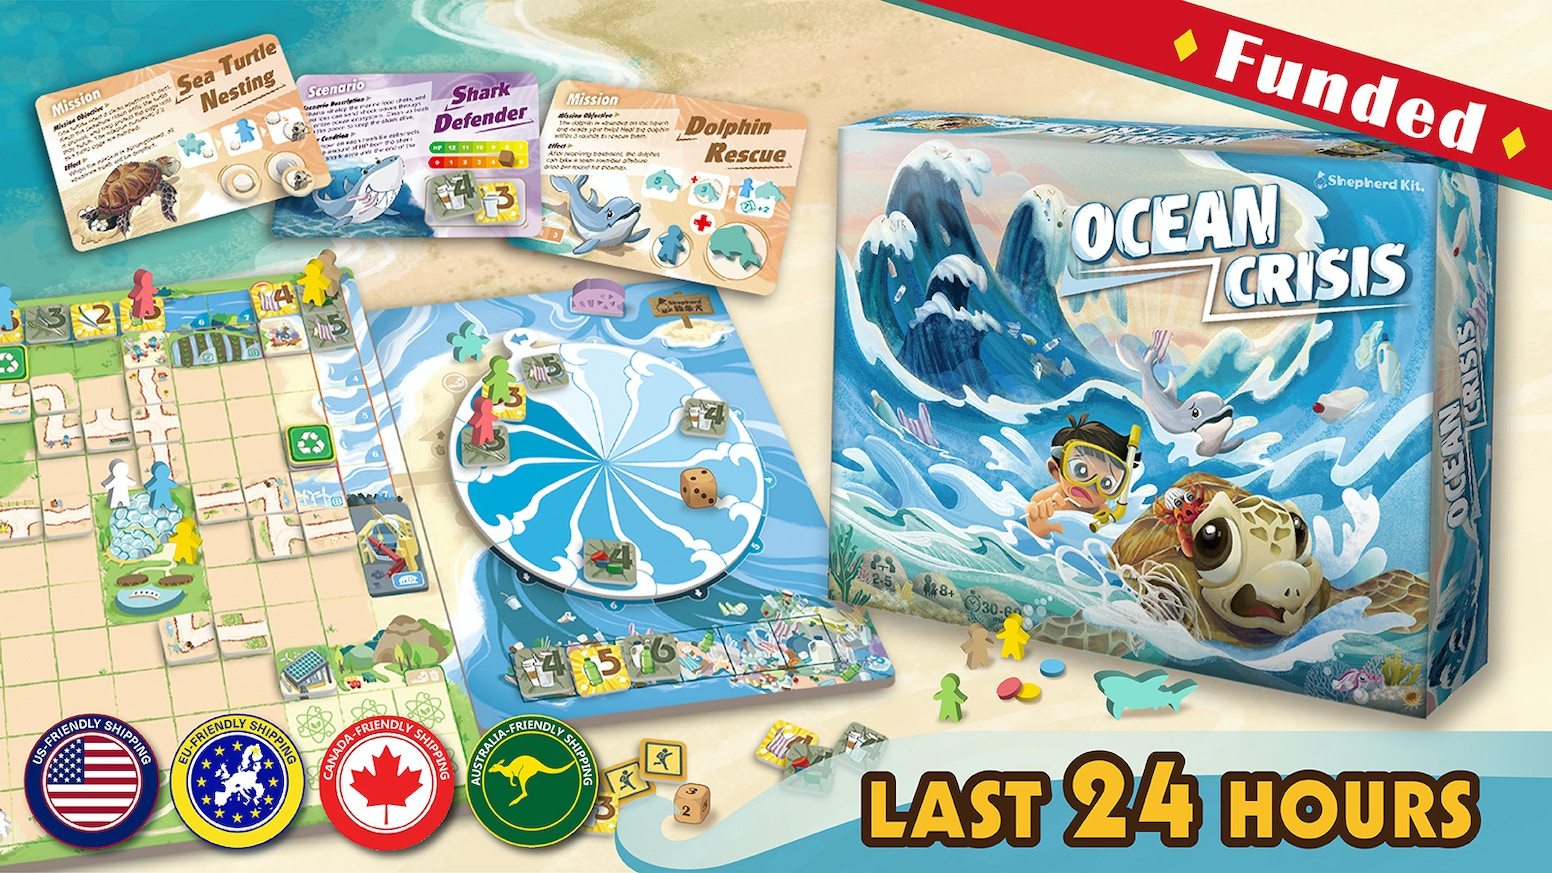 A cooperative worker placement game where players have to unite to save the ocean.